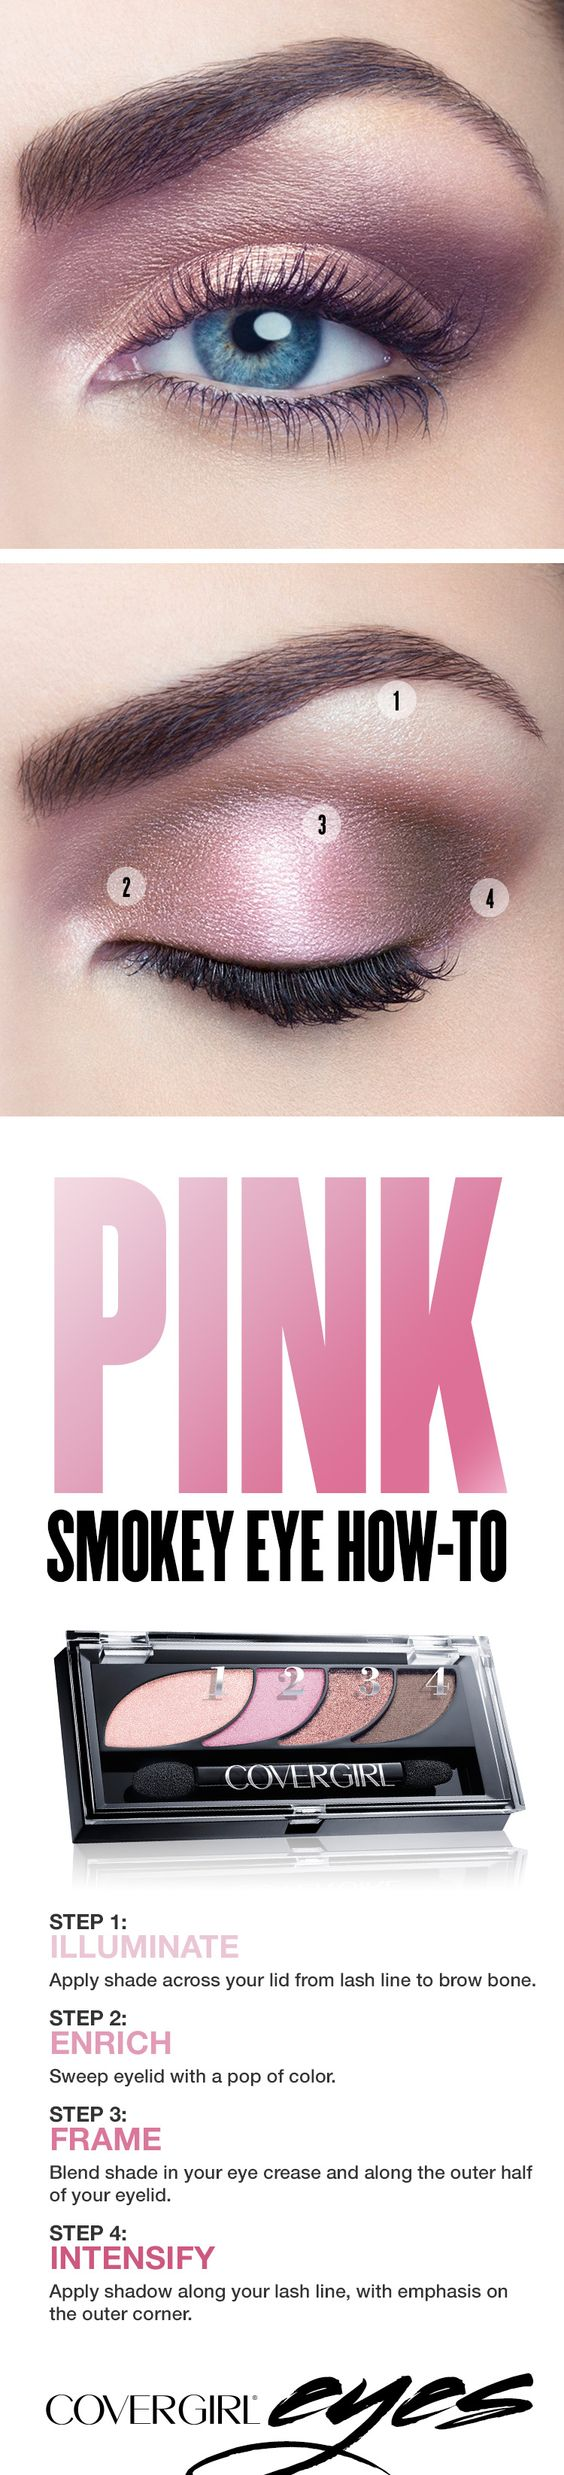 Try this step-by-step tutorial for a pretty pink smokey eye, featuring COVERGIRL Eyeshadow Quads in Blooming Blushes. The COVERGIRL Eyeshadow Quads palette makes it easy, with numbered steps to help you get the gorgeous looks you want. Perfect for any occasion when you'd like to try something other than a standard black smokey eye.: